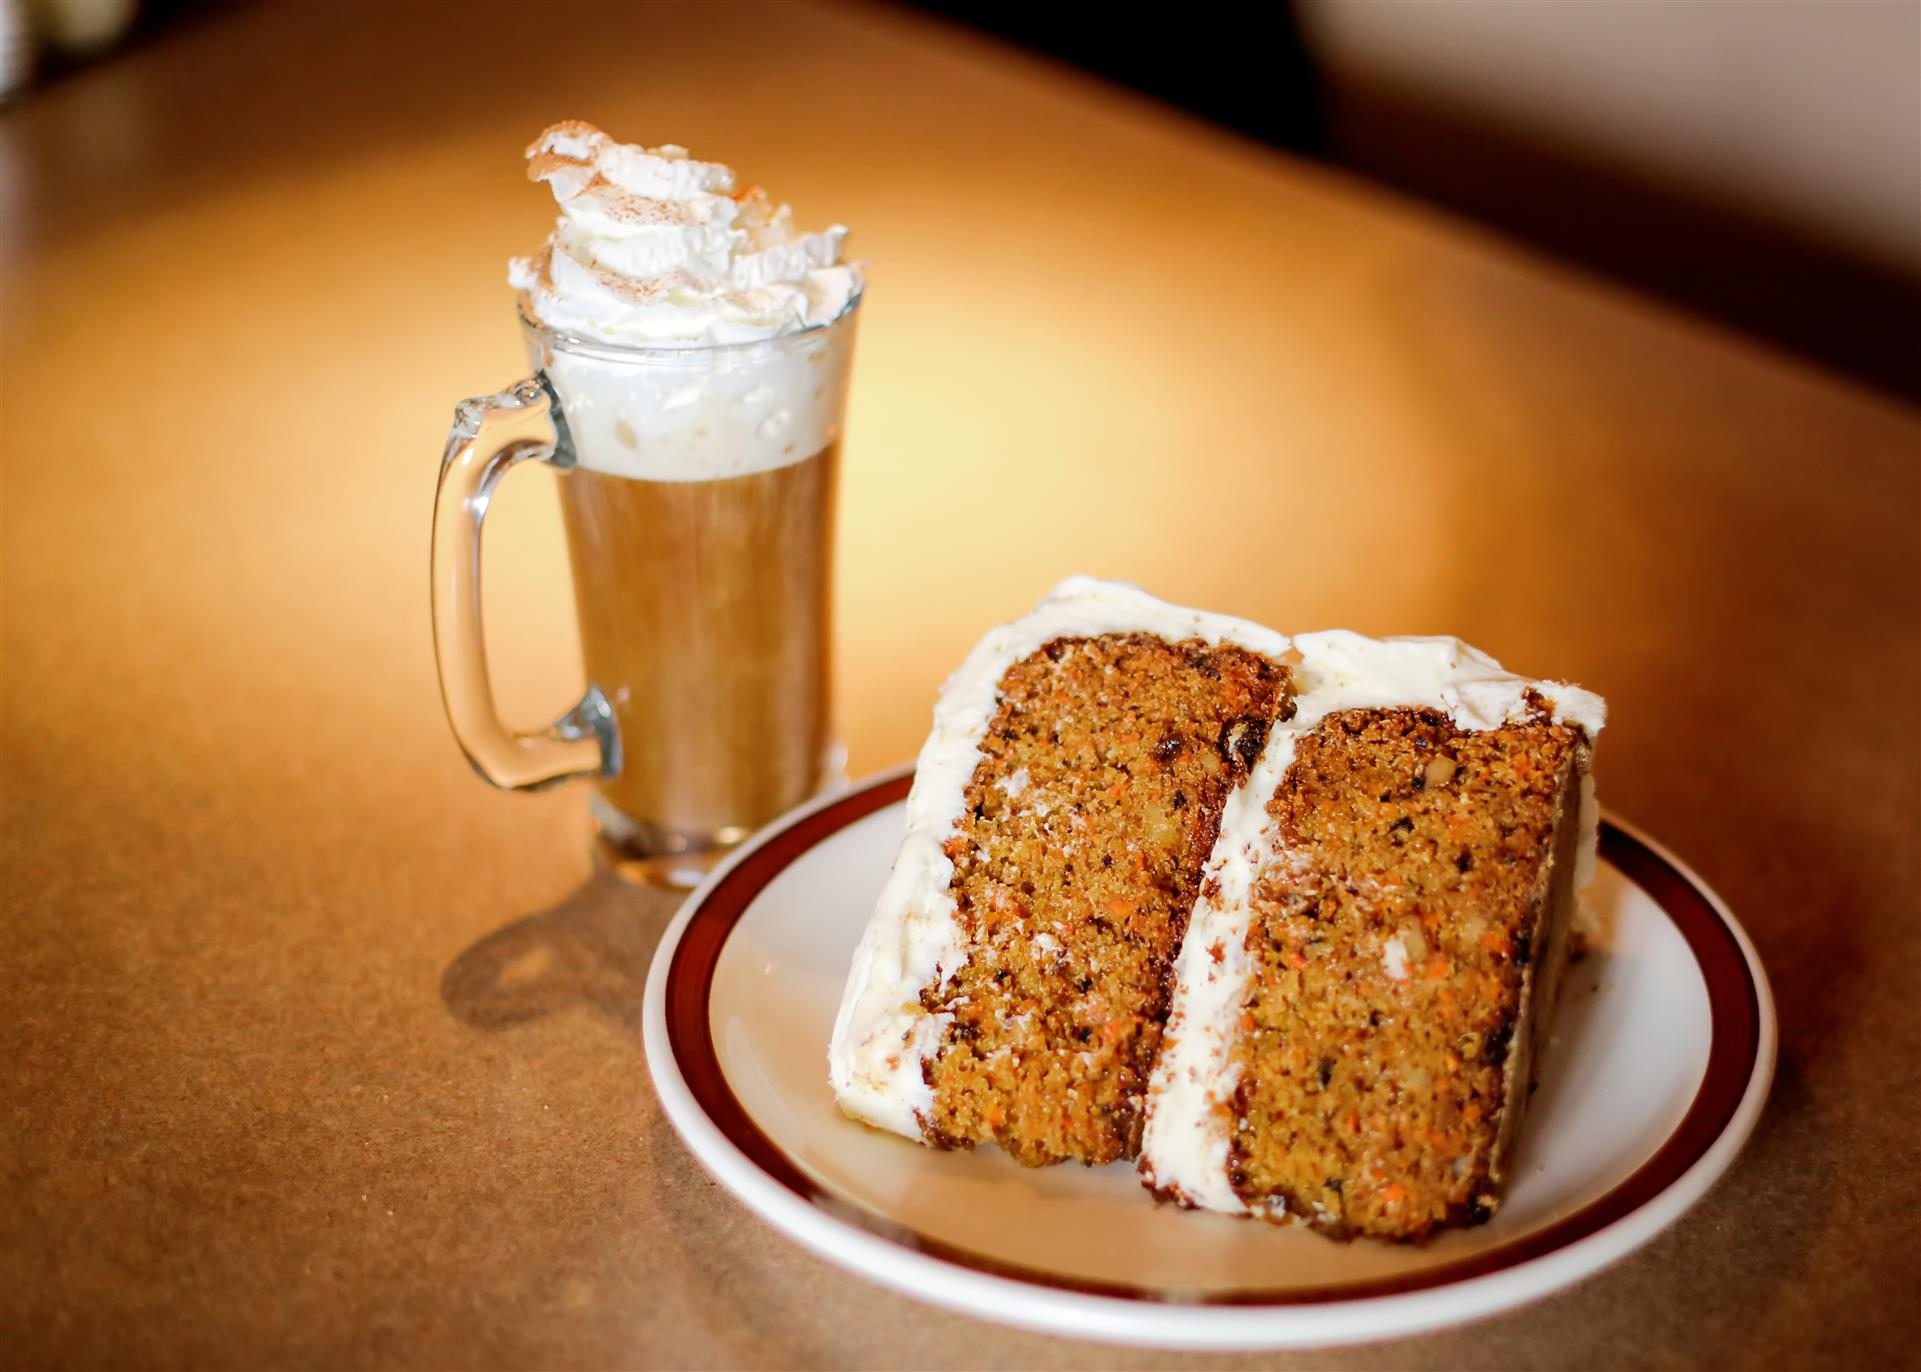 slice of carrot cake on a plate and a coffee next to it topped with whipped cream and cinnamon